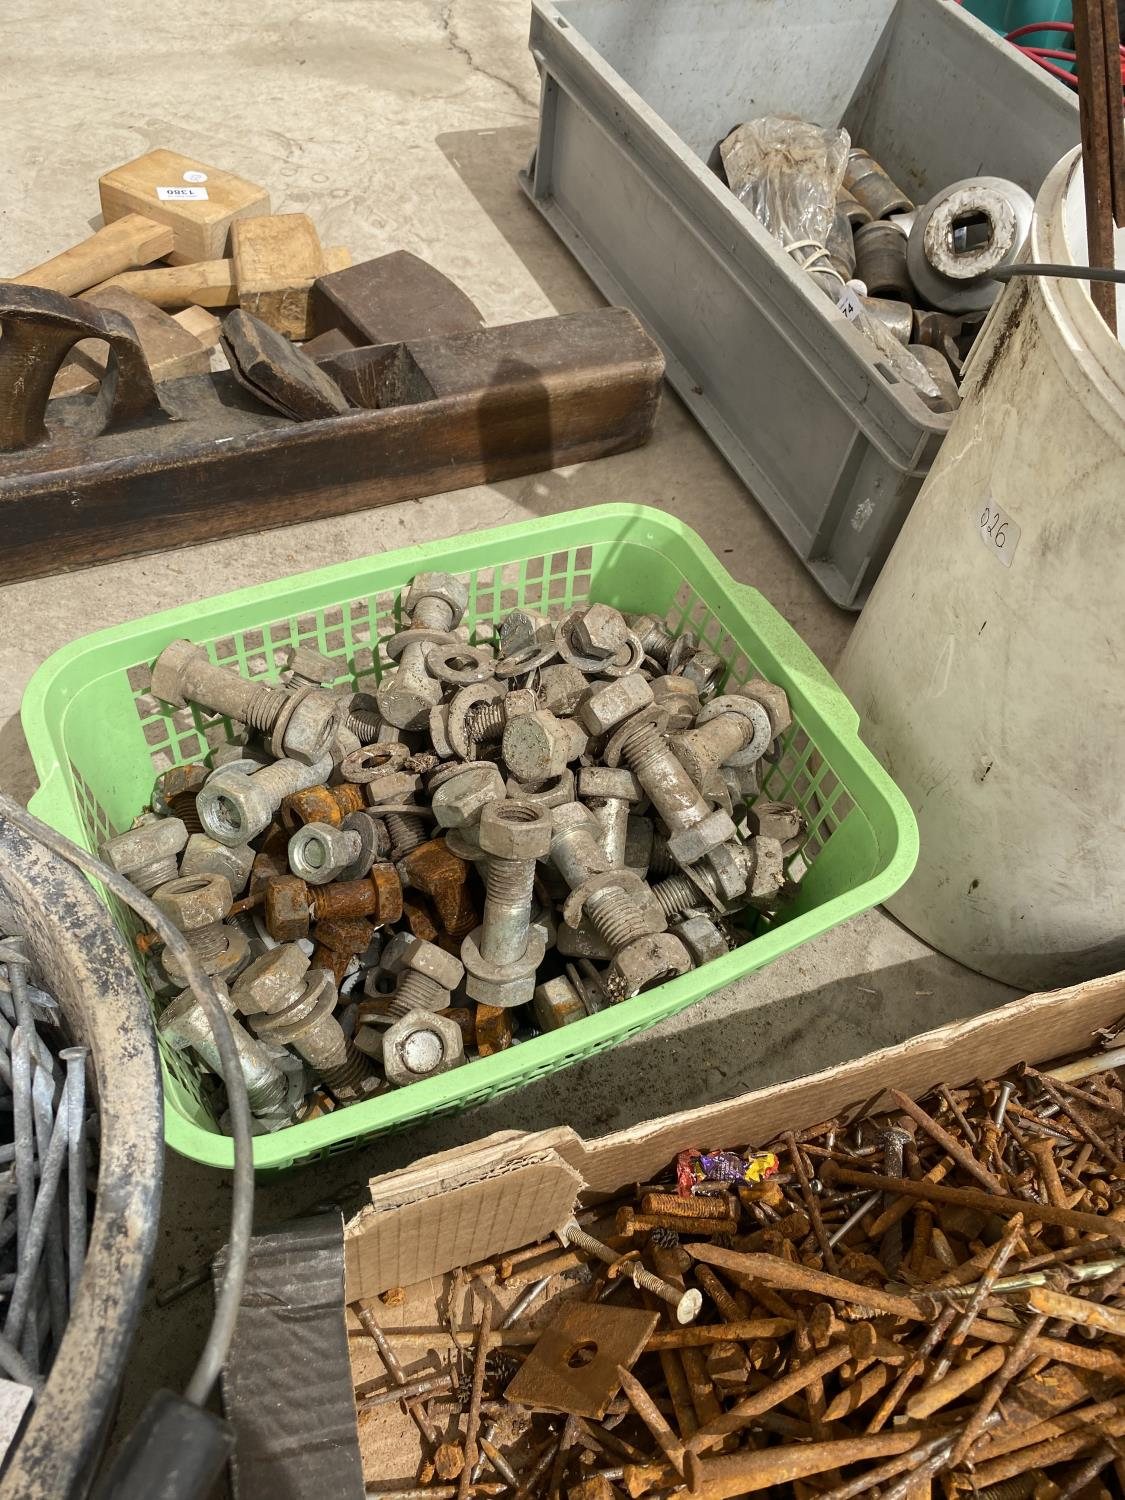 AN ASSORTMENT OF HARDWARE TO INCLUDE NAILS AND NUTS AND BOLTS ETC - Image 3 of 5